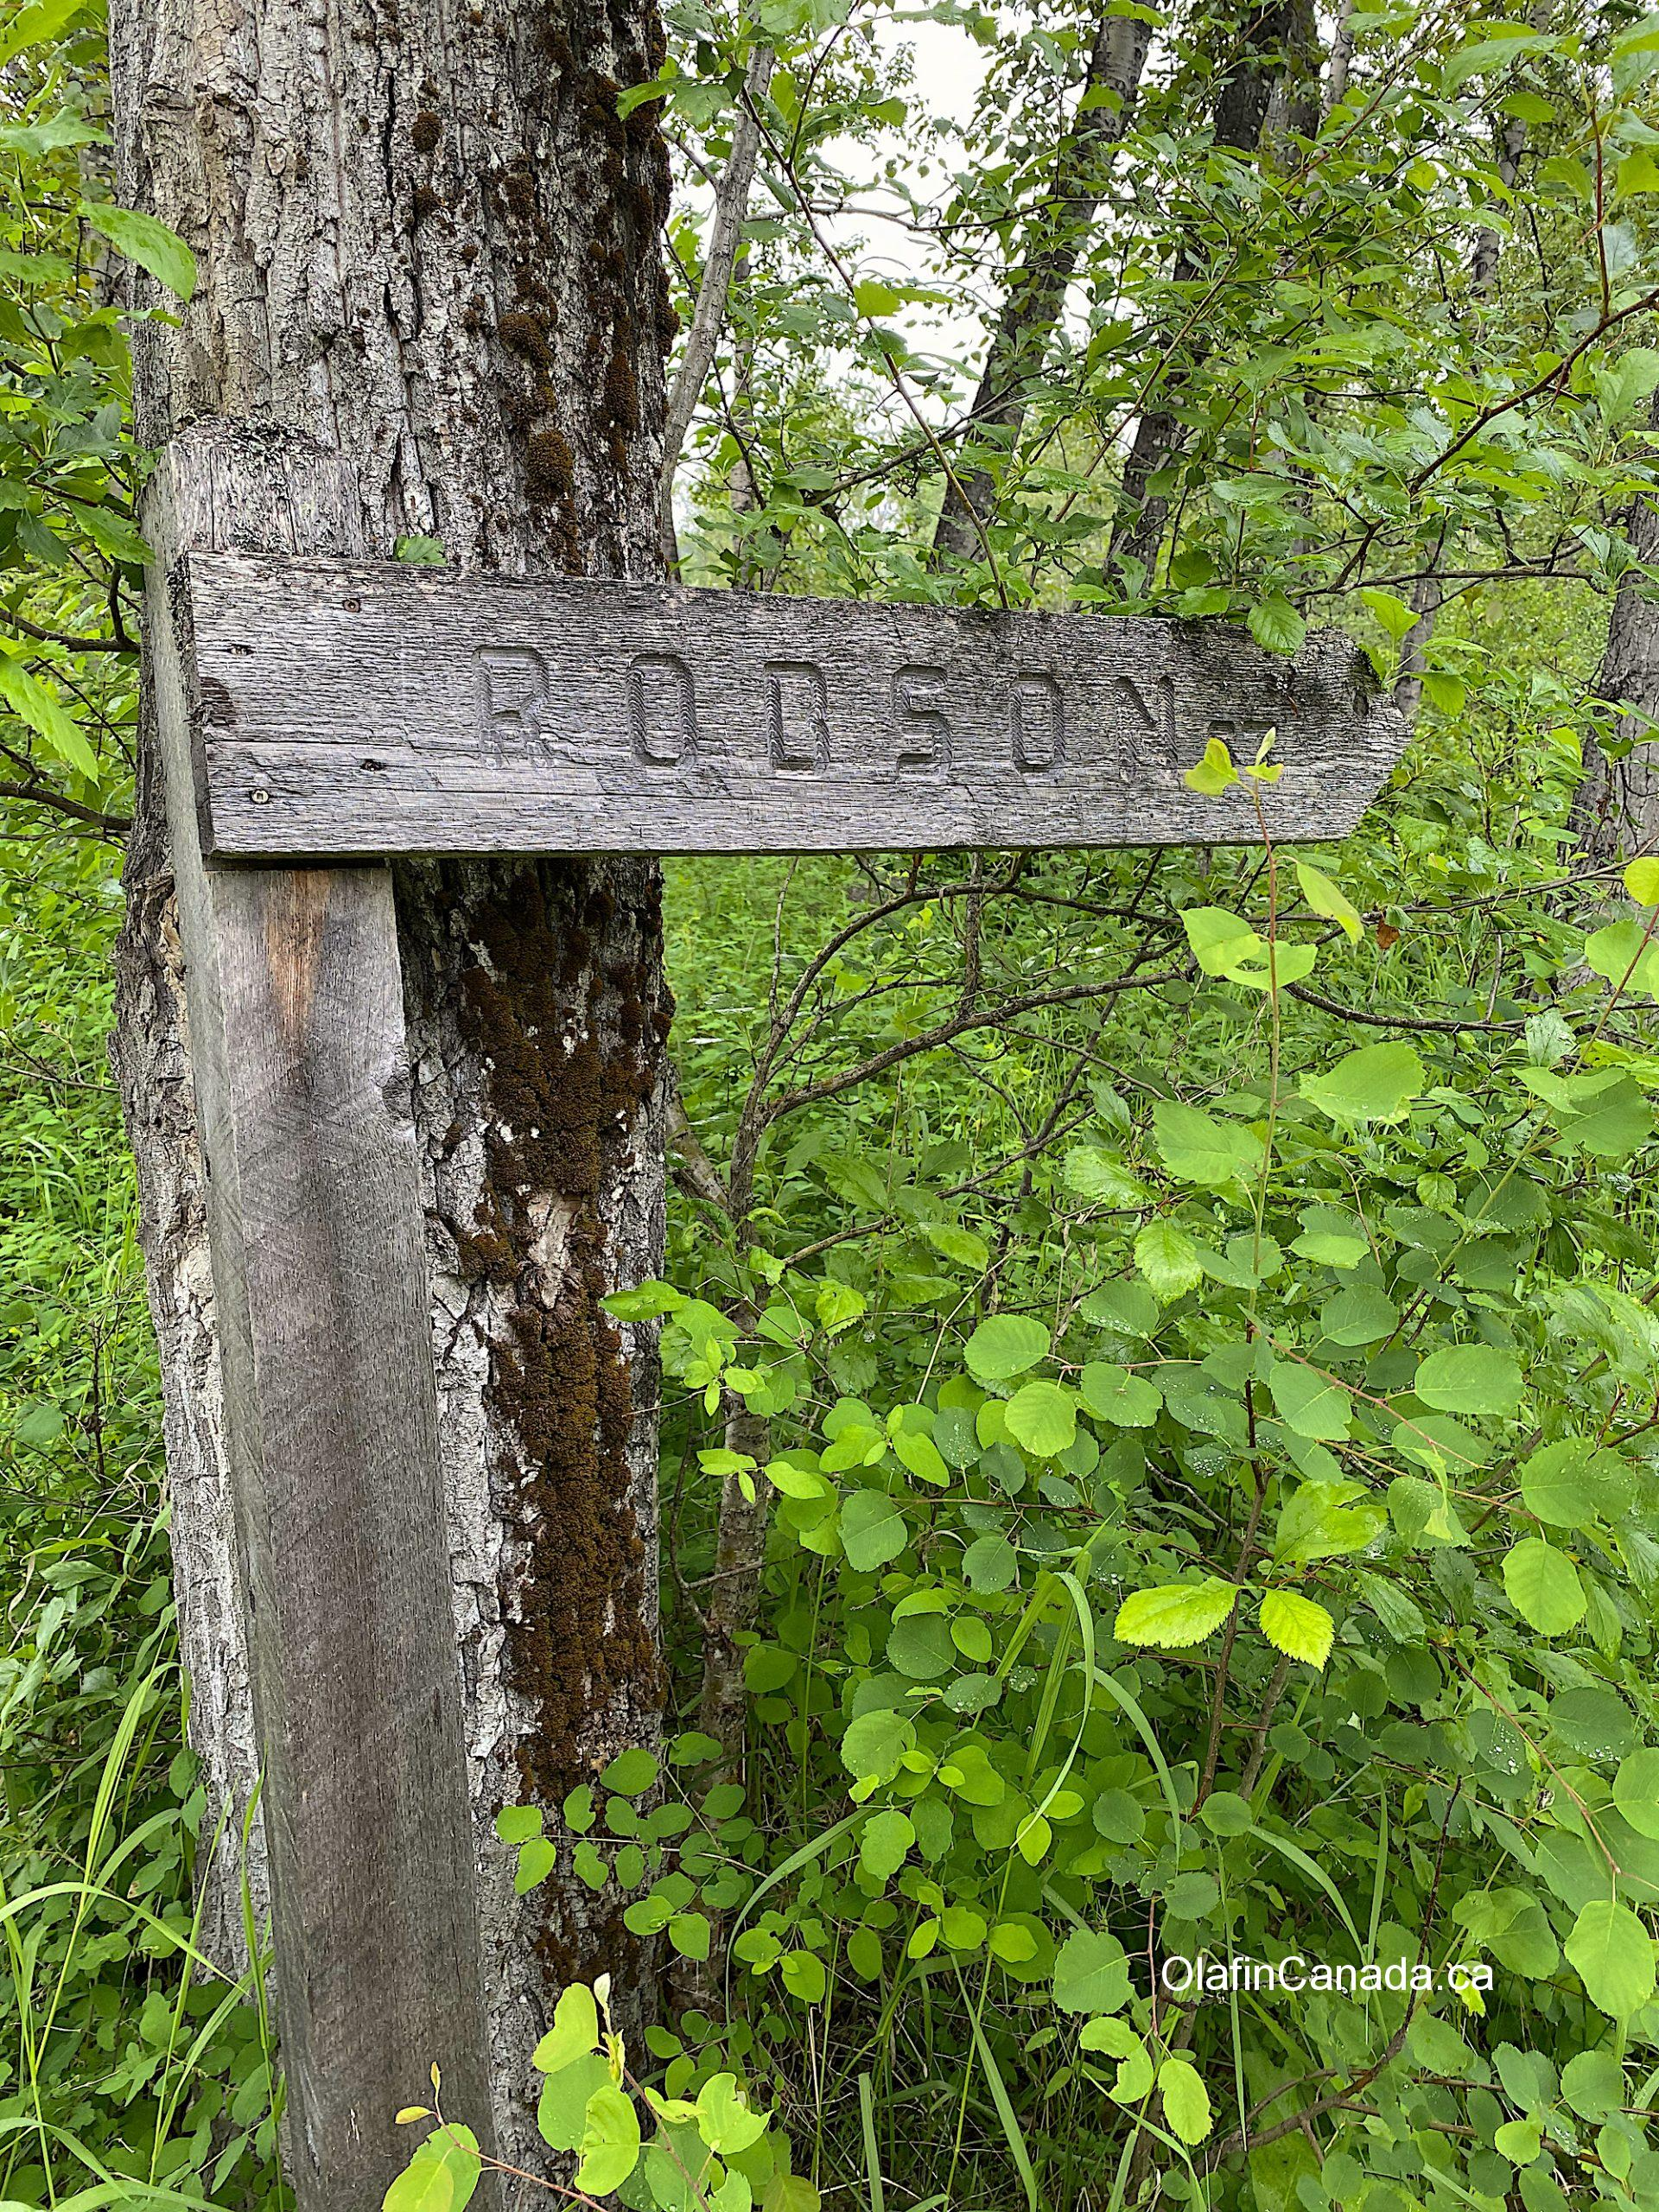 Robson Street sign in Quesnel Forks Old grave at the cemetery in Quesnel Forks #olafincanada #britishcolumbia #discoverbc #abandonedbc #cariboo #quesnelforks